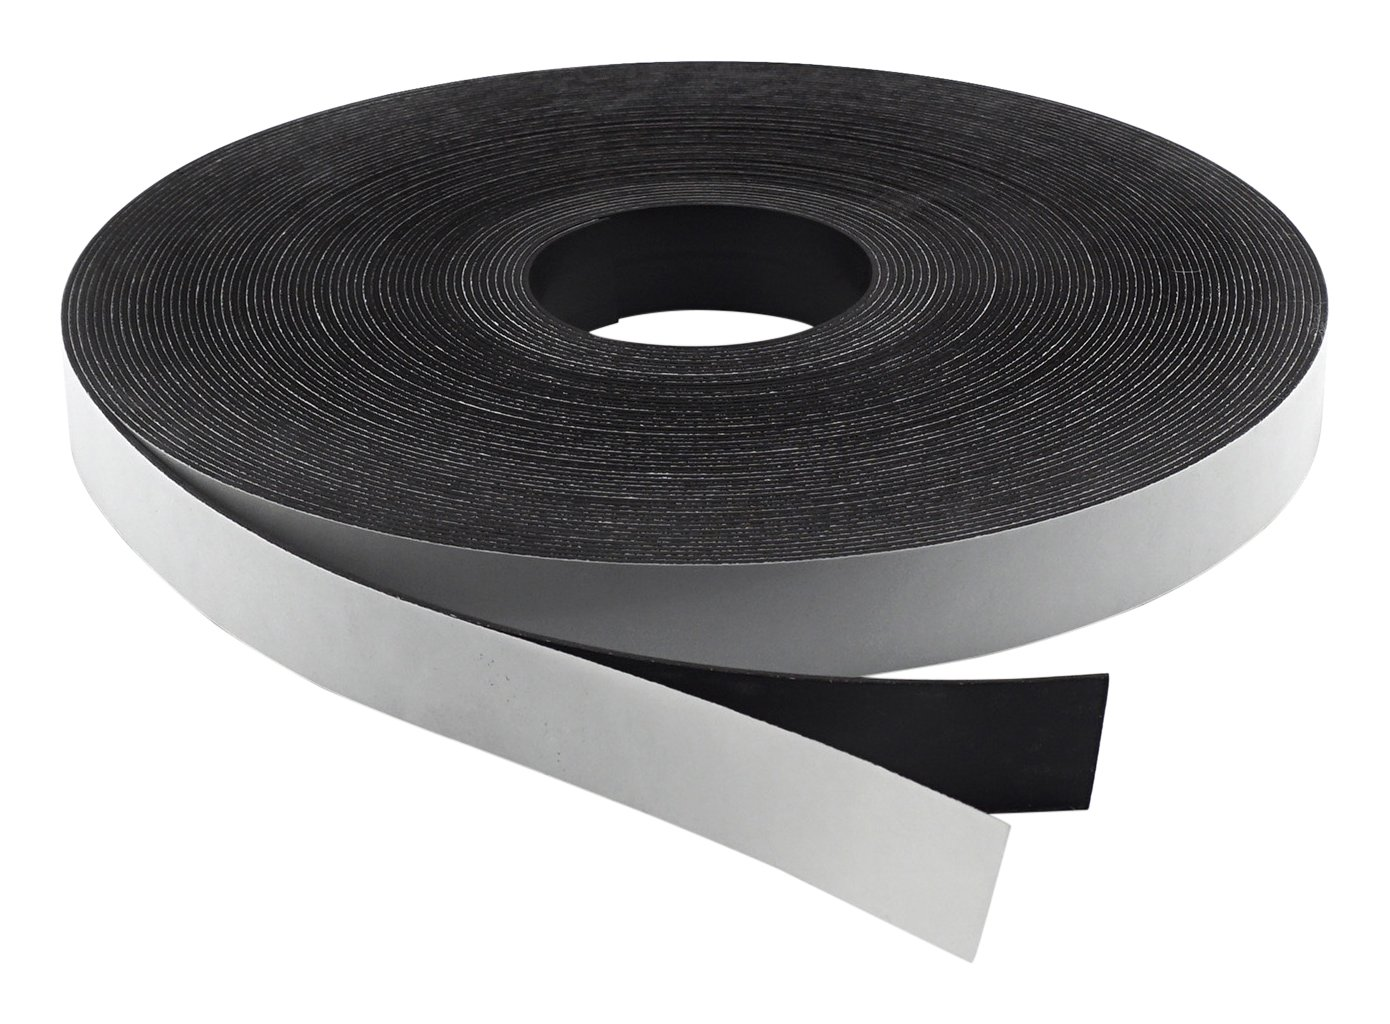 Master Magnetics Flexible Magnet Strip with Adhesive Back , 1/16'' Thick, 1-1/2'' Wide, 100 feet (1 Roll)